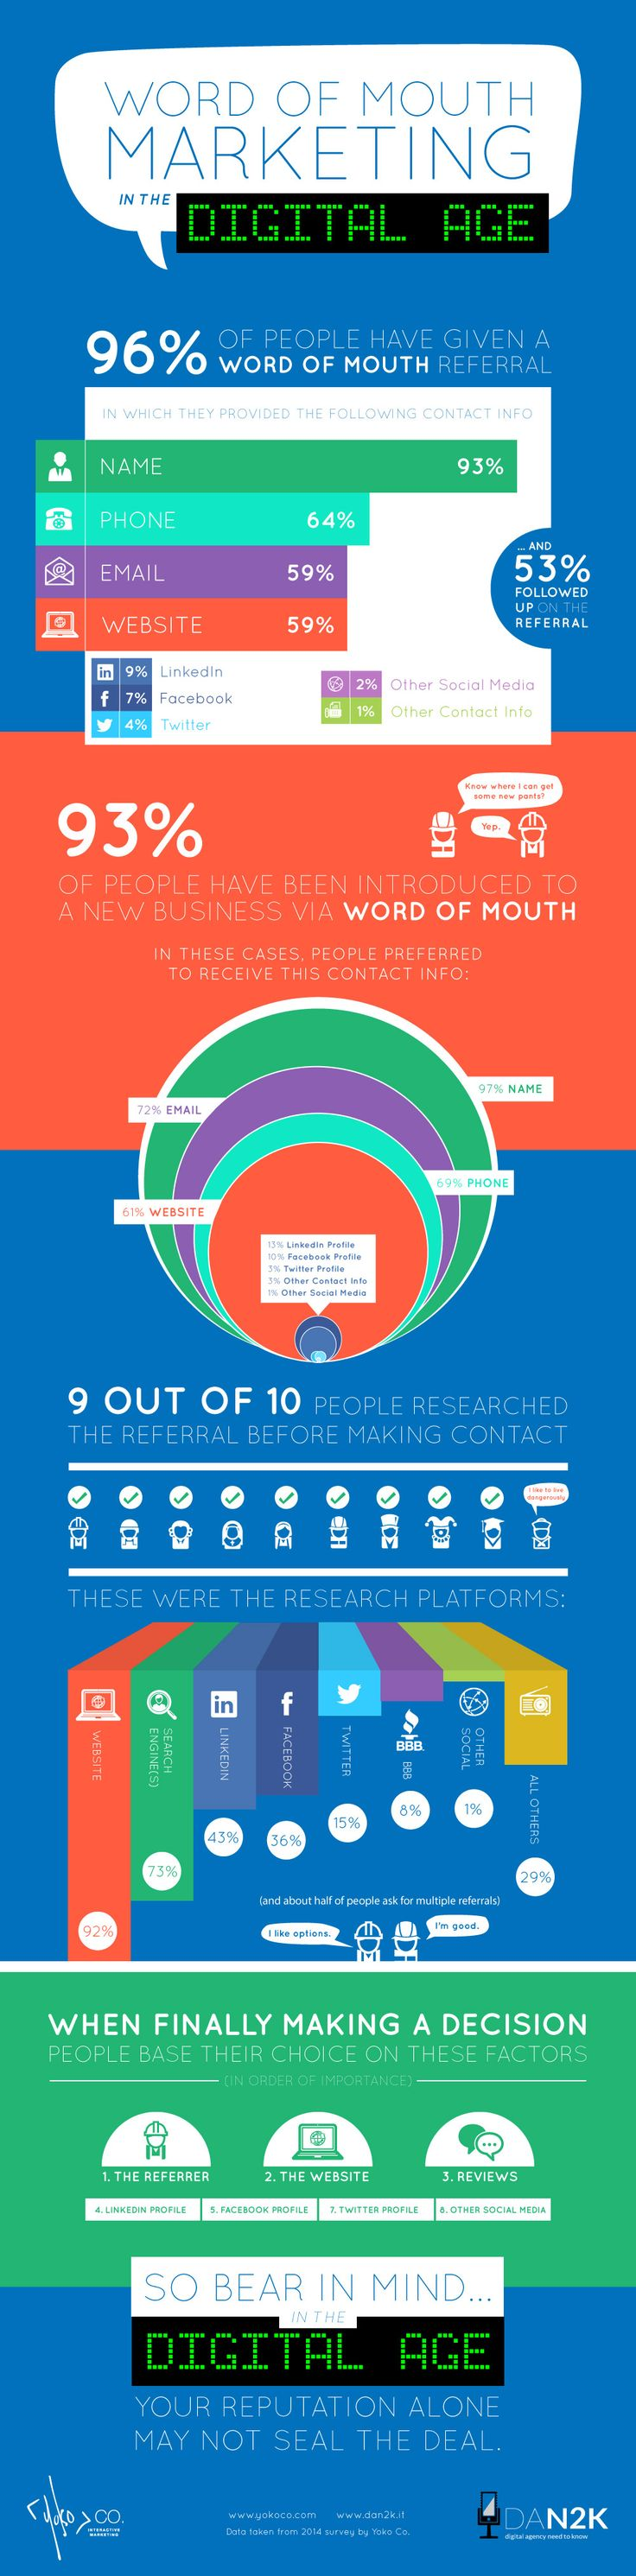 wersm-infographic-word-of-mouth-marketing